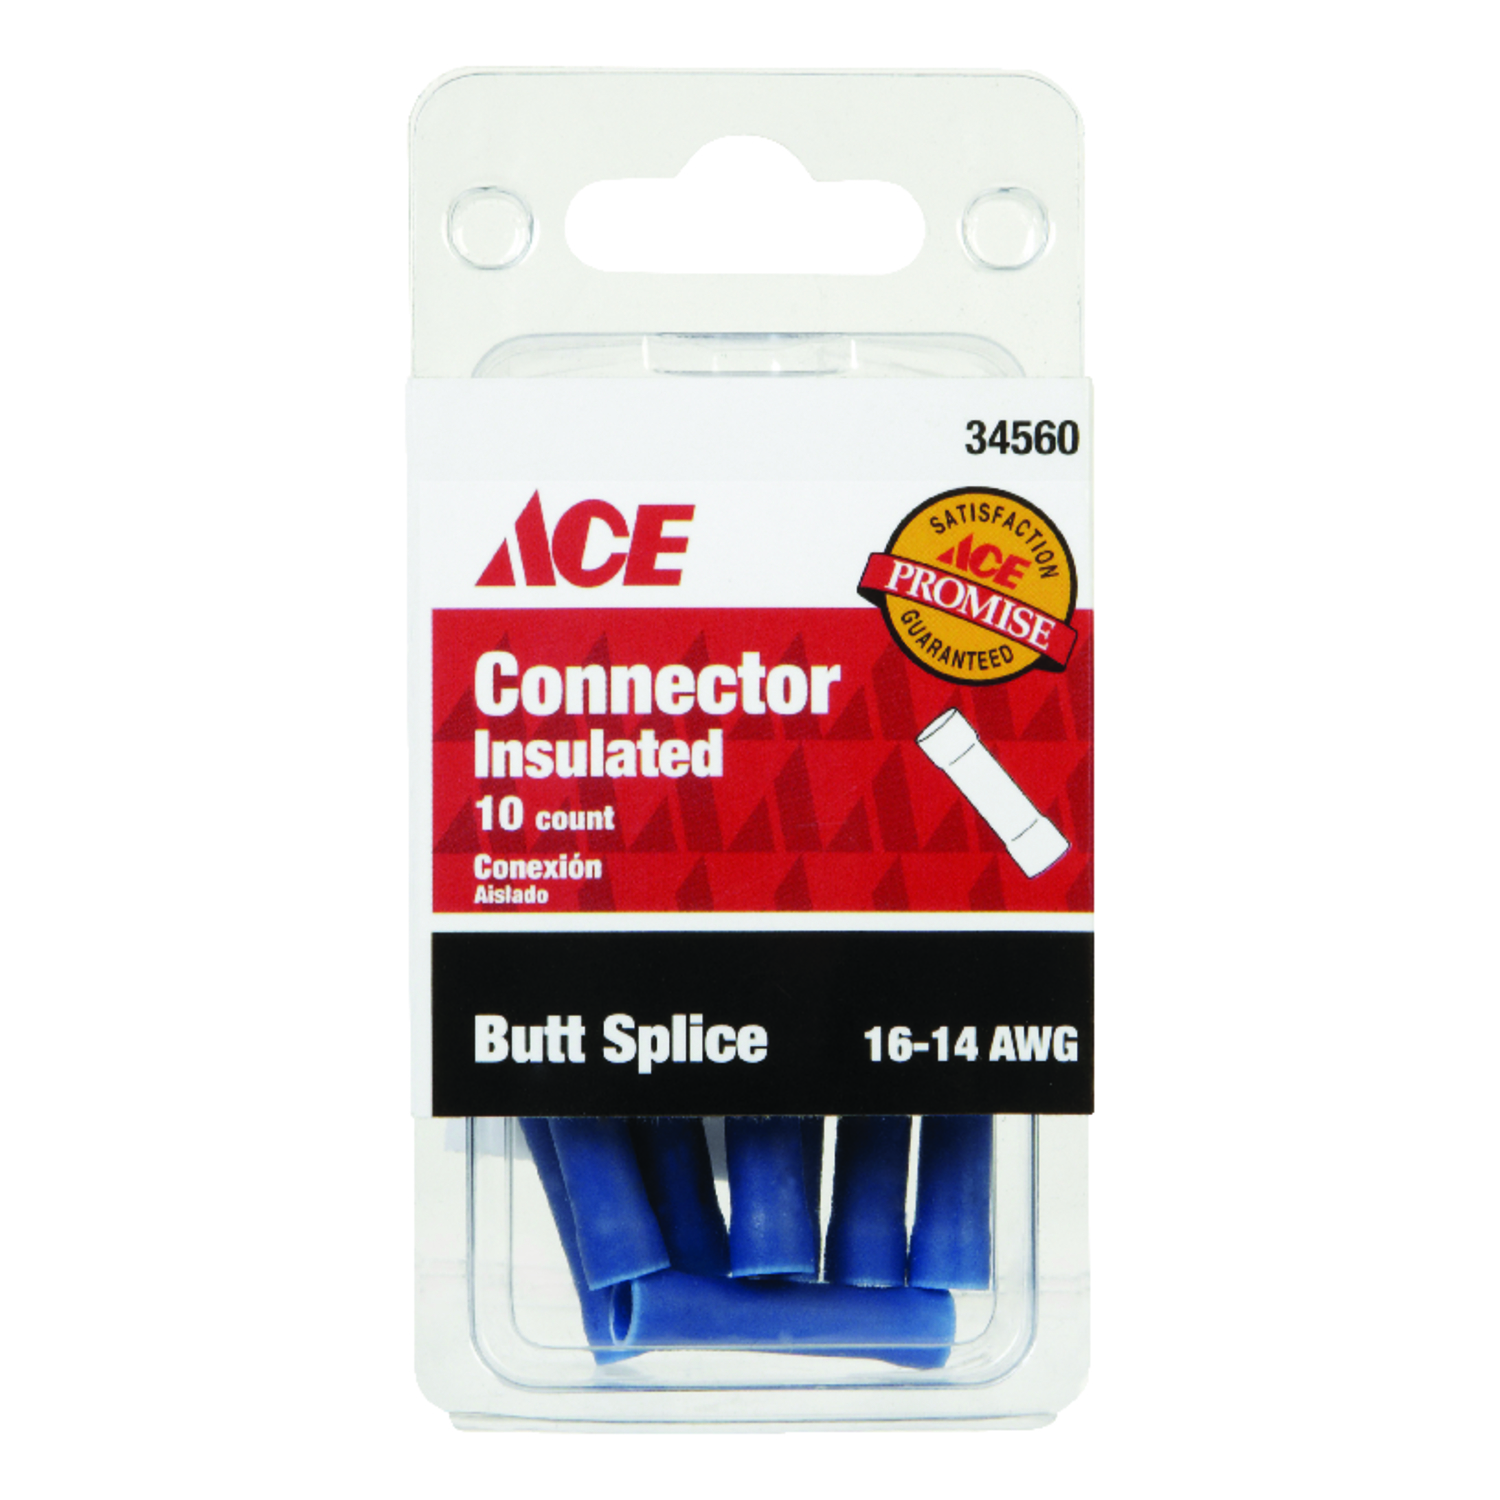 Ace Insulated Wire 10 16-14 AWG Butt Connector - Ace Hardware